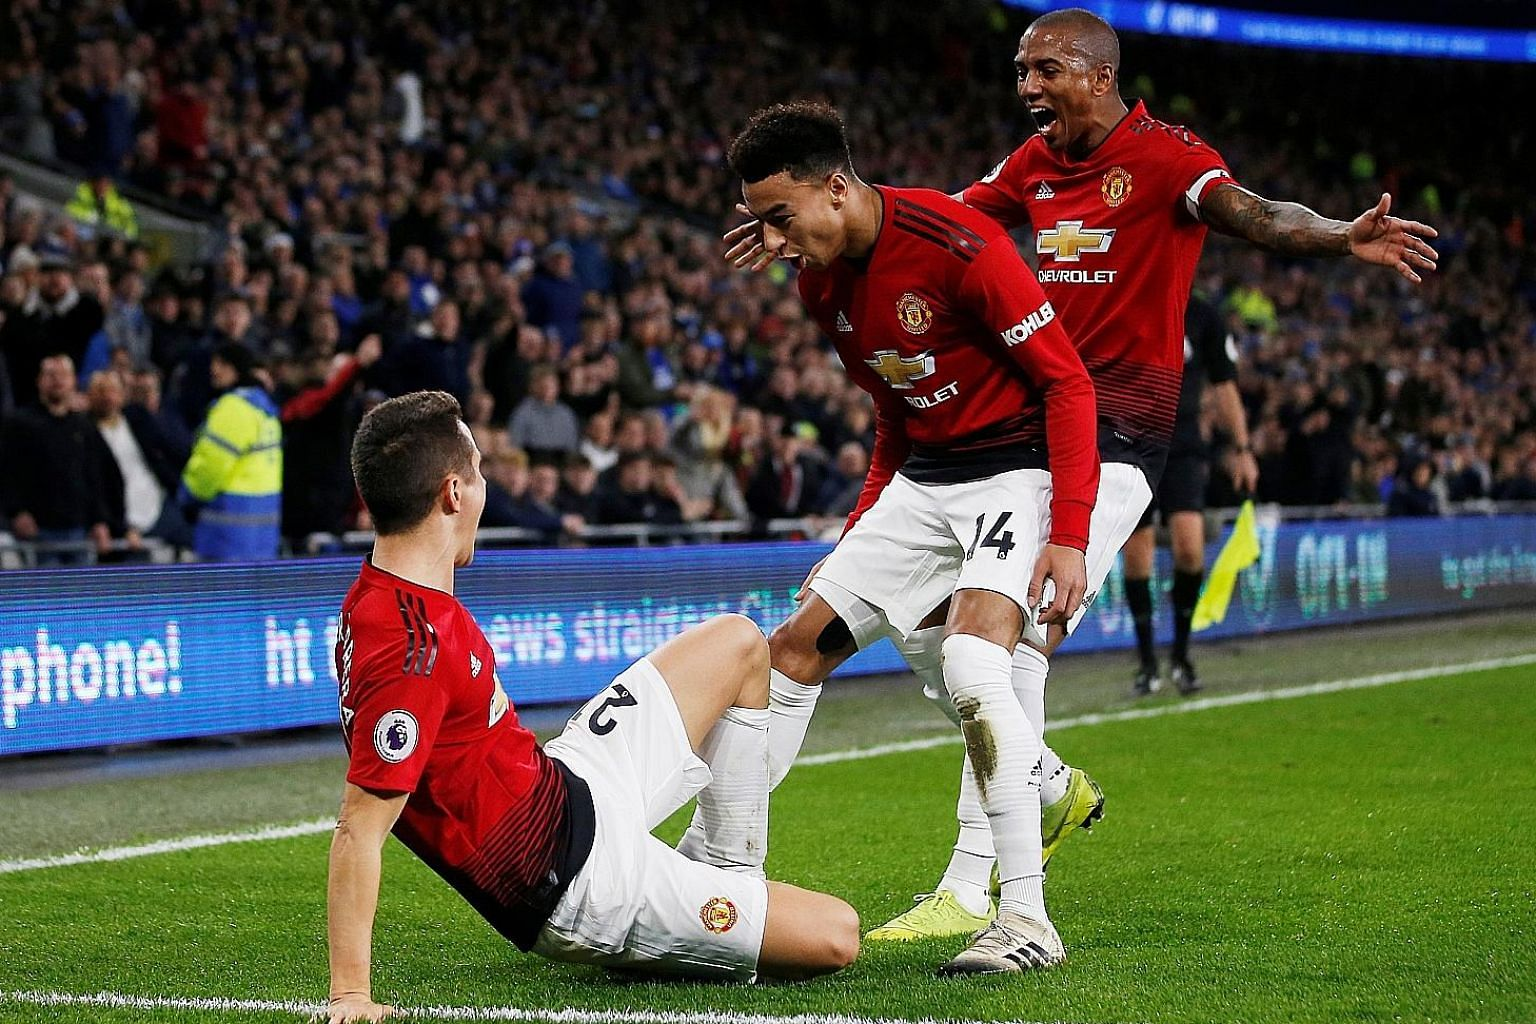 Ander Herrera celebrating with Jesse Lingard and Ashley Young after putting United 2-0 up against Cardiff on Saturday. The 5-1 win closed the gap on fourth-placed Chelsea to eight points.